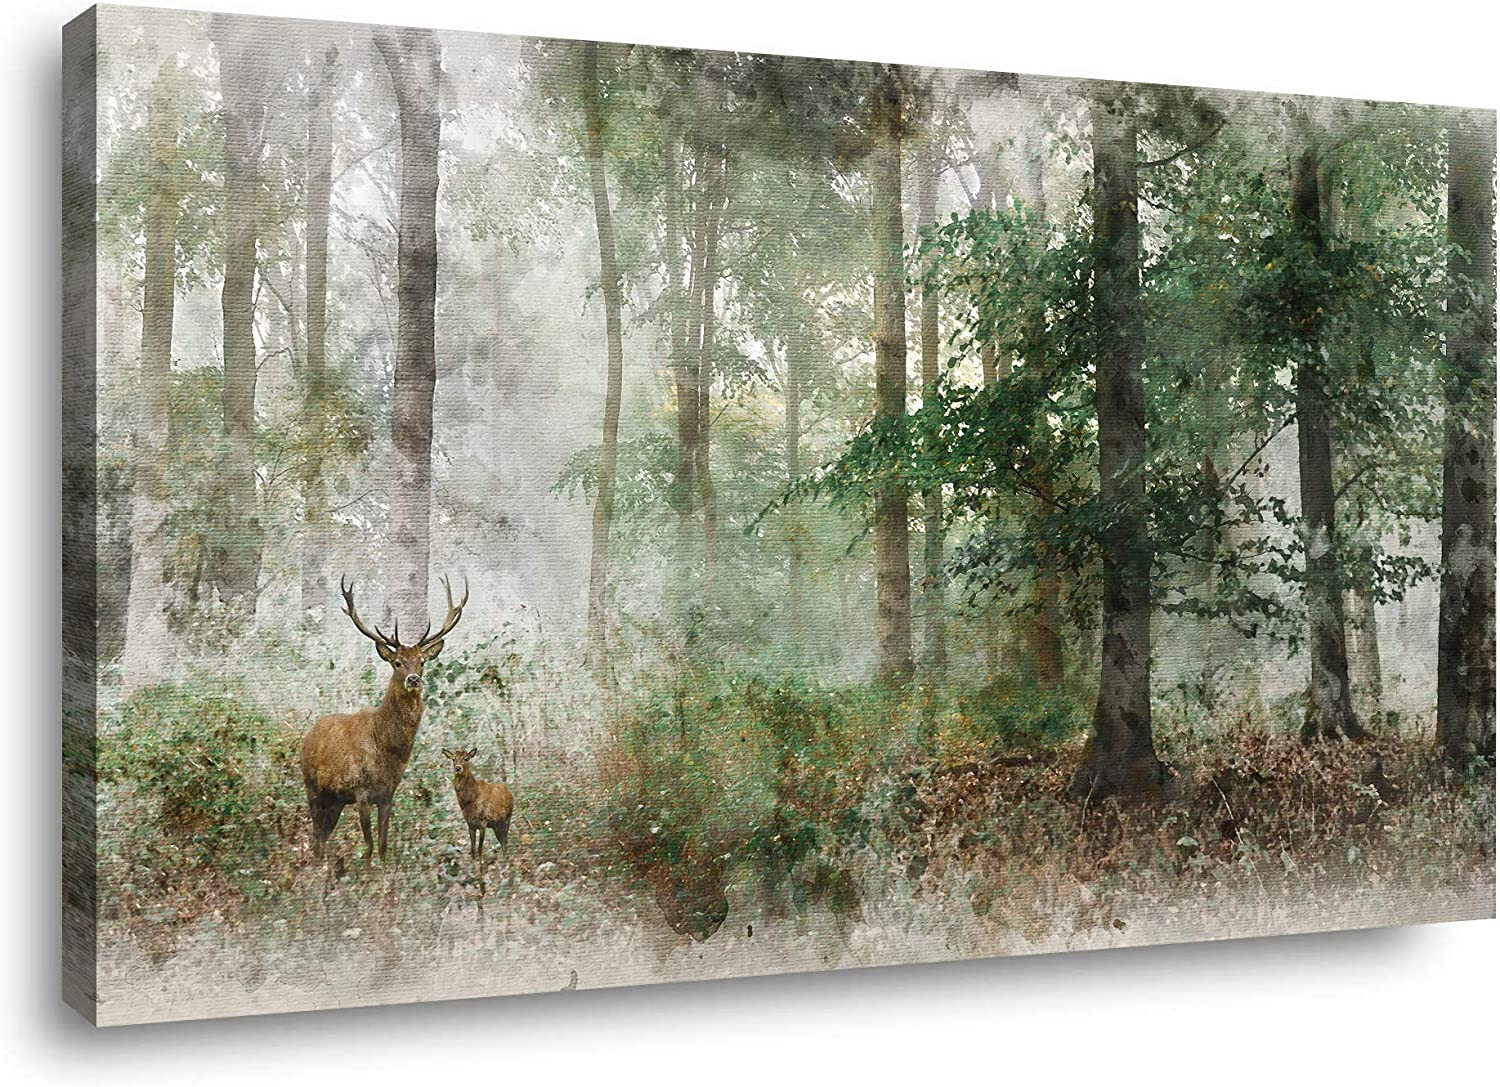 Canvas Wall Art for Living Room Paintings Wall Art Decor Bathroom Wall Art Bedroom Bathroom Pictures Wall Decor Art Prints Framed Kitchen Accessories Large Watercolor Fog Forest Deer Wall Art24